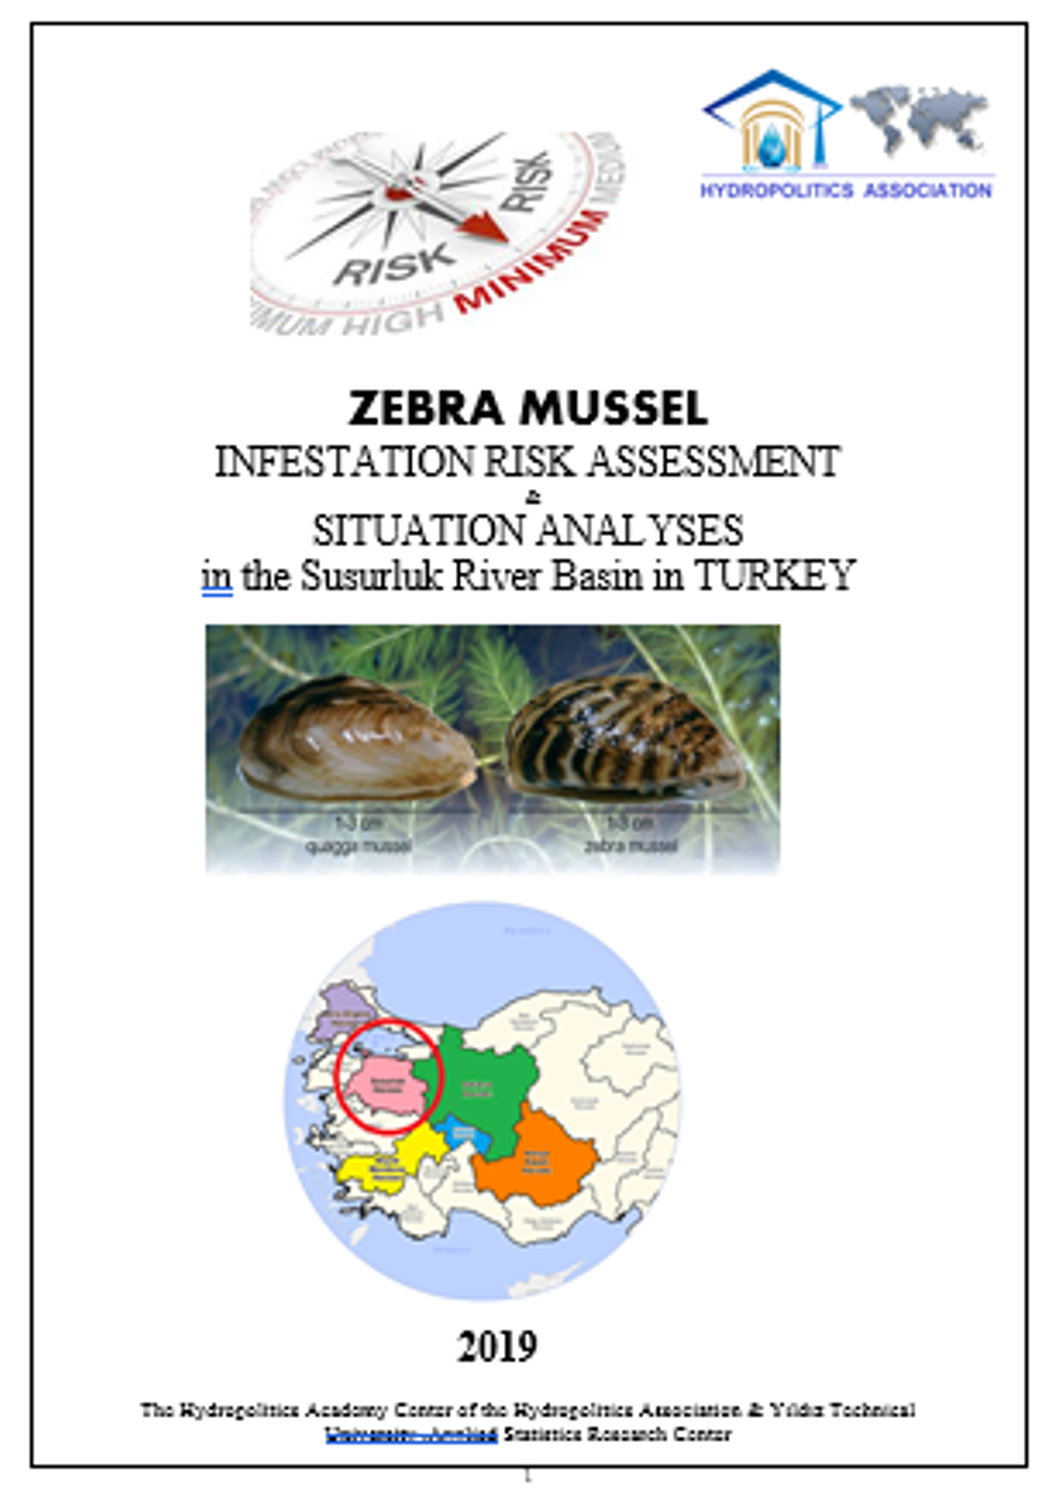 ZEBRA MUSSEL INFESTATION RISK ASSESSMENT & SITUATION ANALYSES in the Susurluk River Basin in TURKEY